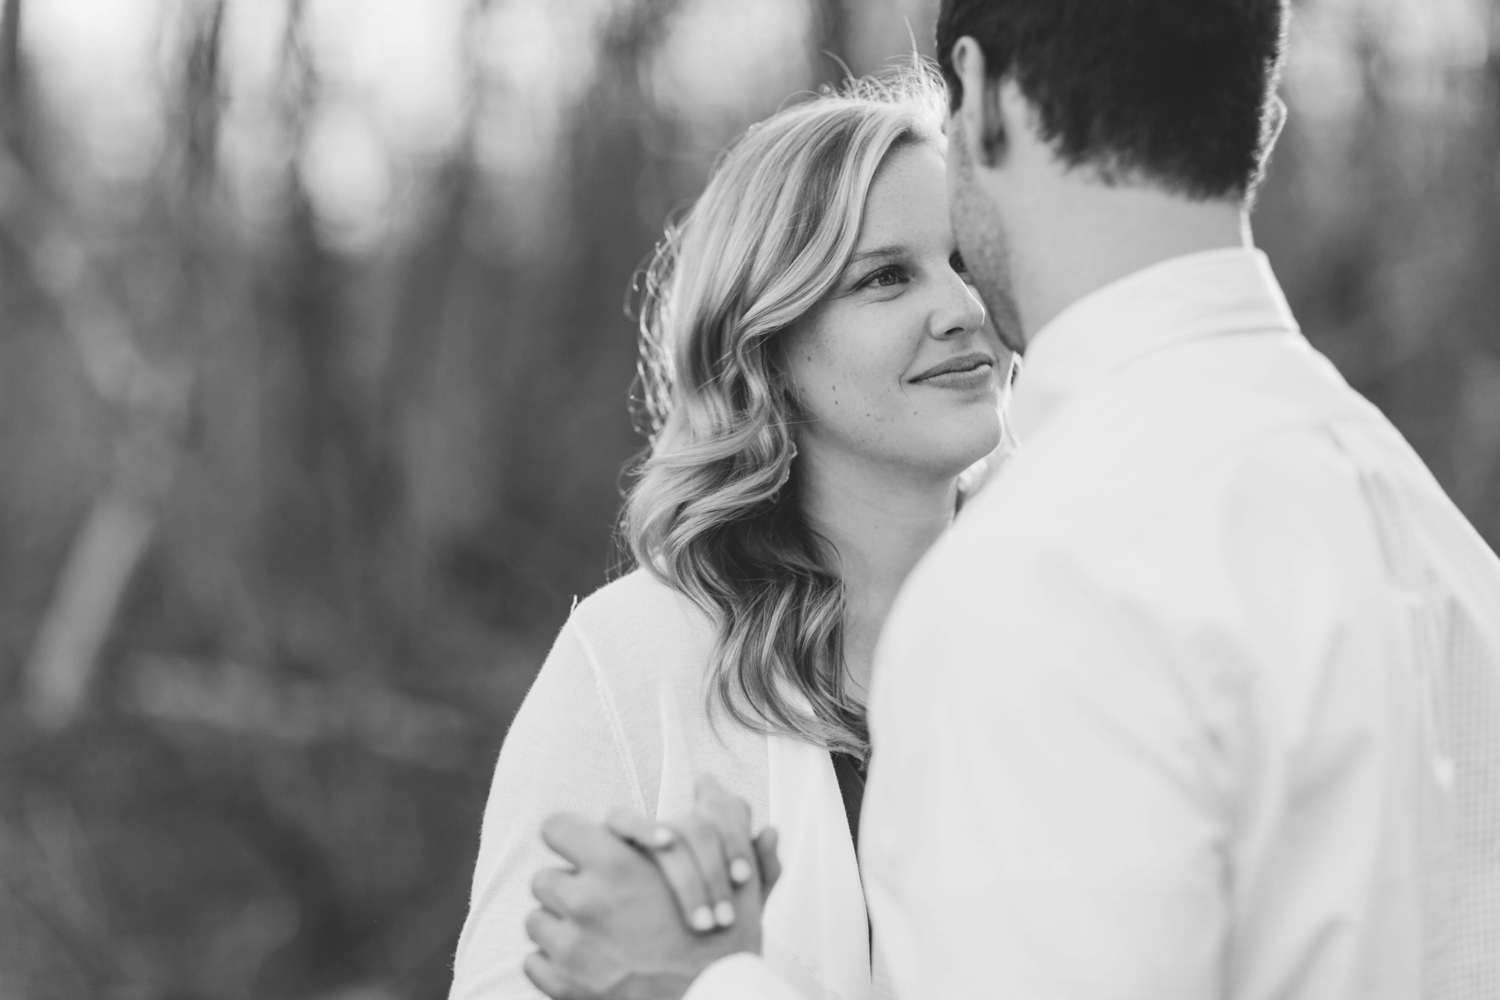 indianapolis_wedding_photographer_golden_hour_engagement_chloe_luka_photography_6127.jpg